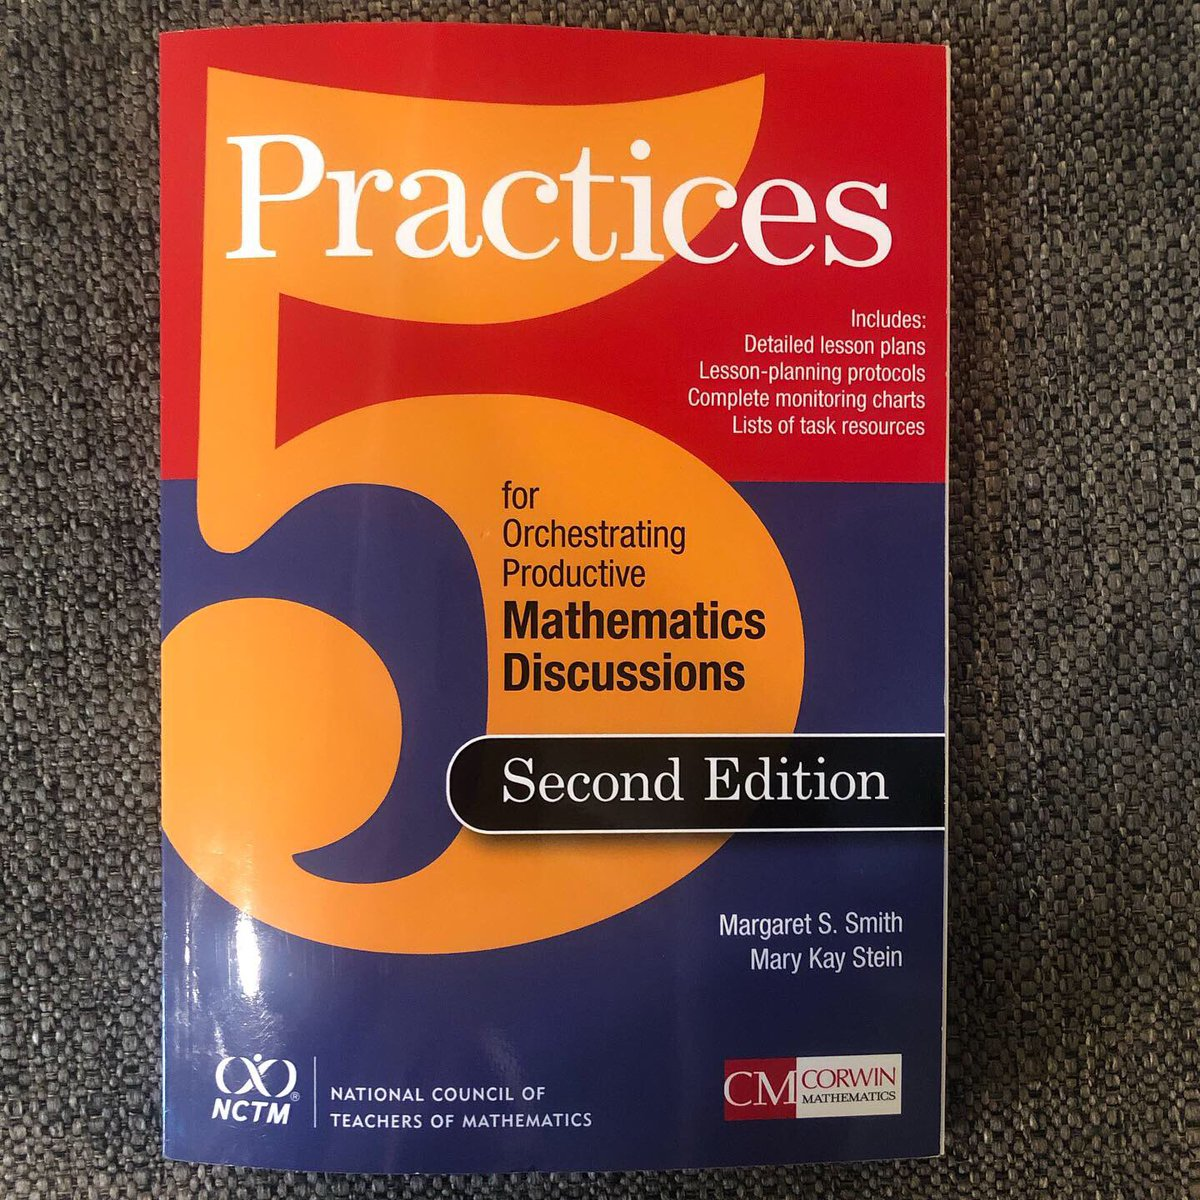 After hearing about this book from @MakeMathMoments, I'm excited to give it a read. I'm looking forward to having great math discussions with my students next year! #mtbos #iteachmath #mathchat #iteach4th #edchat #teacherlife